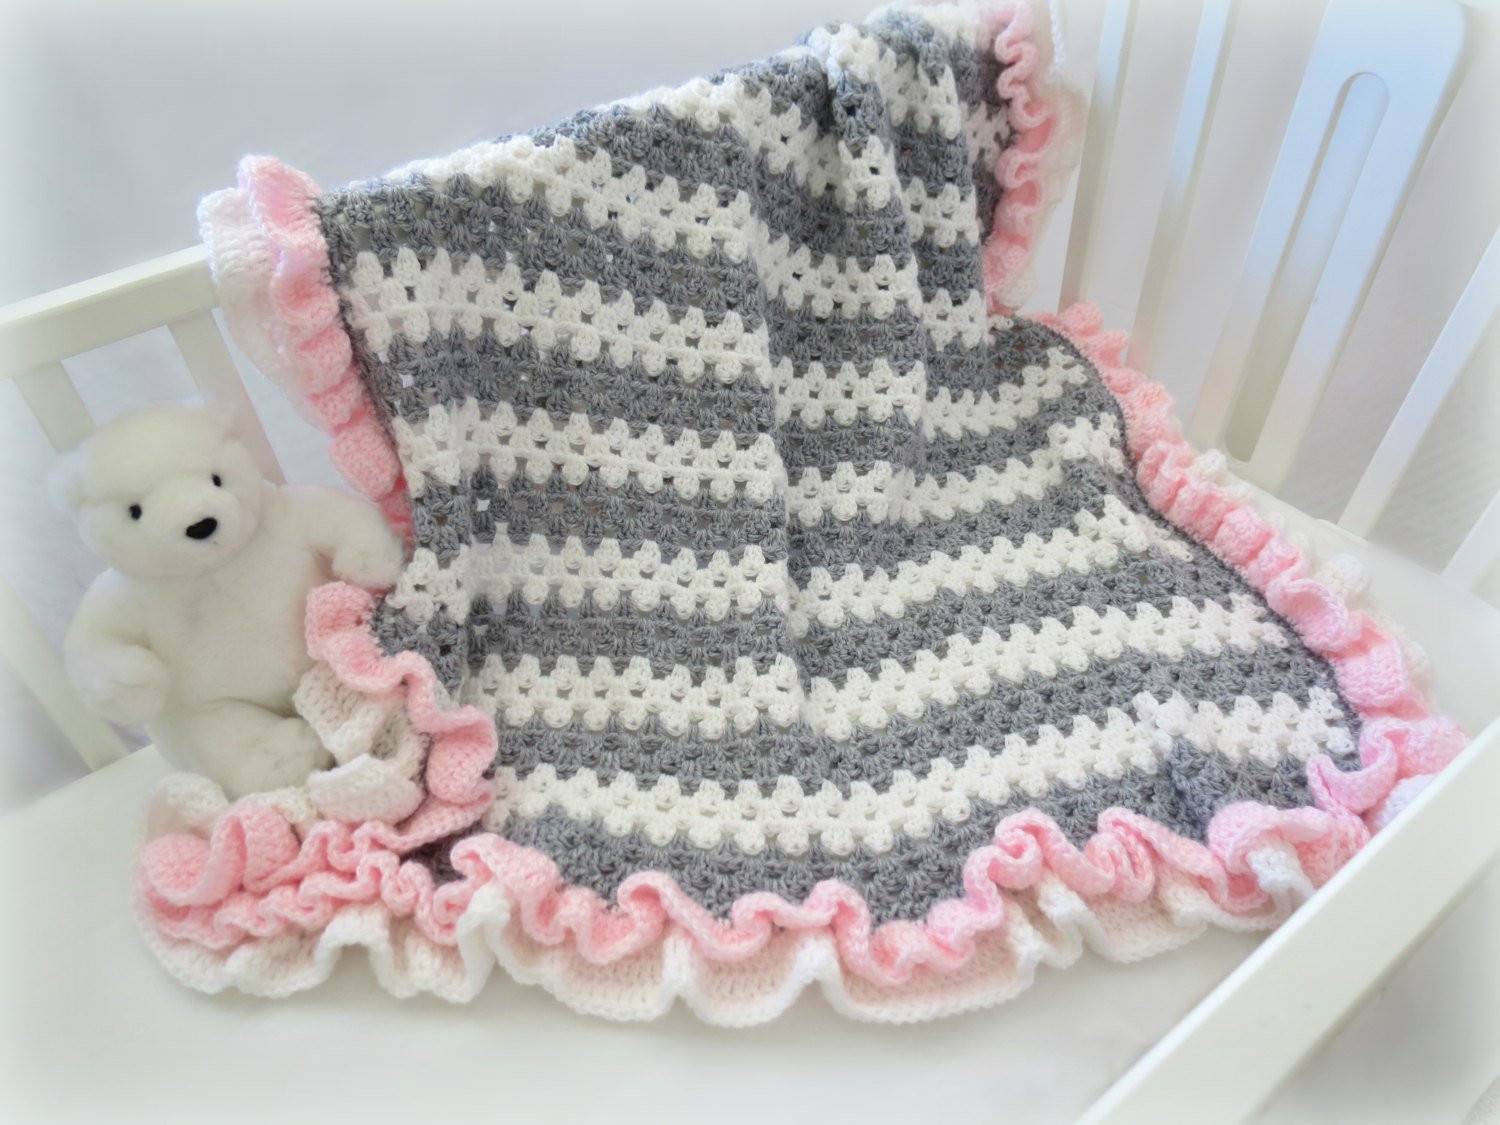 Baby Boy Crochet Blanket Patterns New Crochet Baby Blanket Pattern Baby Crochet Blanket Afghan Of Baby Boy Crochet Blanket Patterns Inspirational Turquoise Baby Blanket Chunky Crochet Blanket for Baby Boy